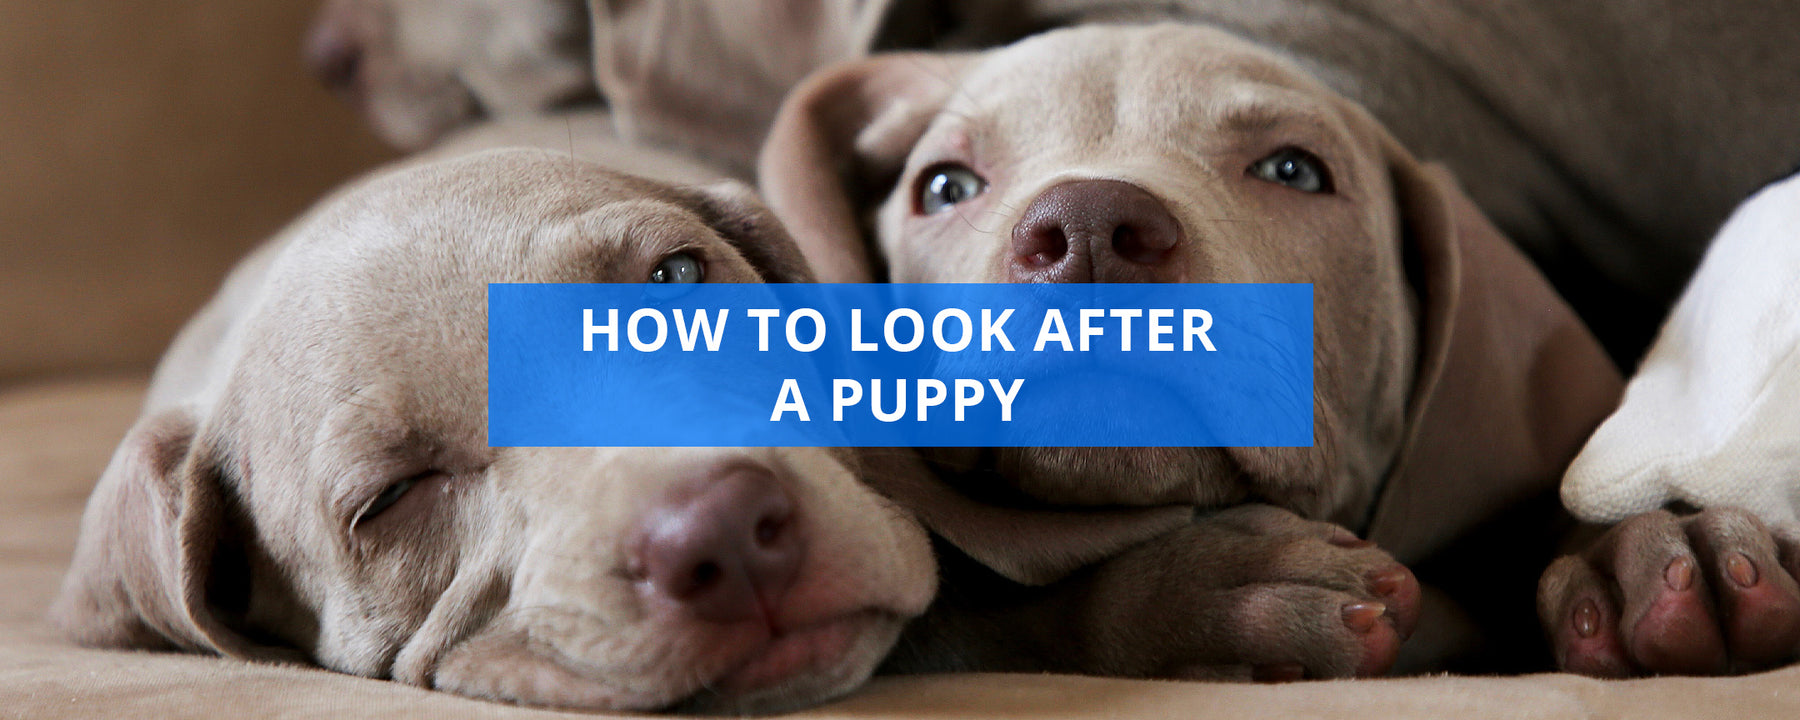 How To Look After A Puppy